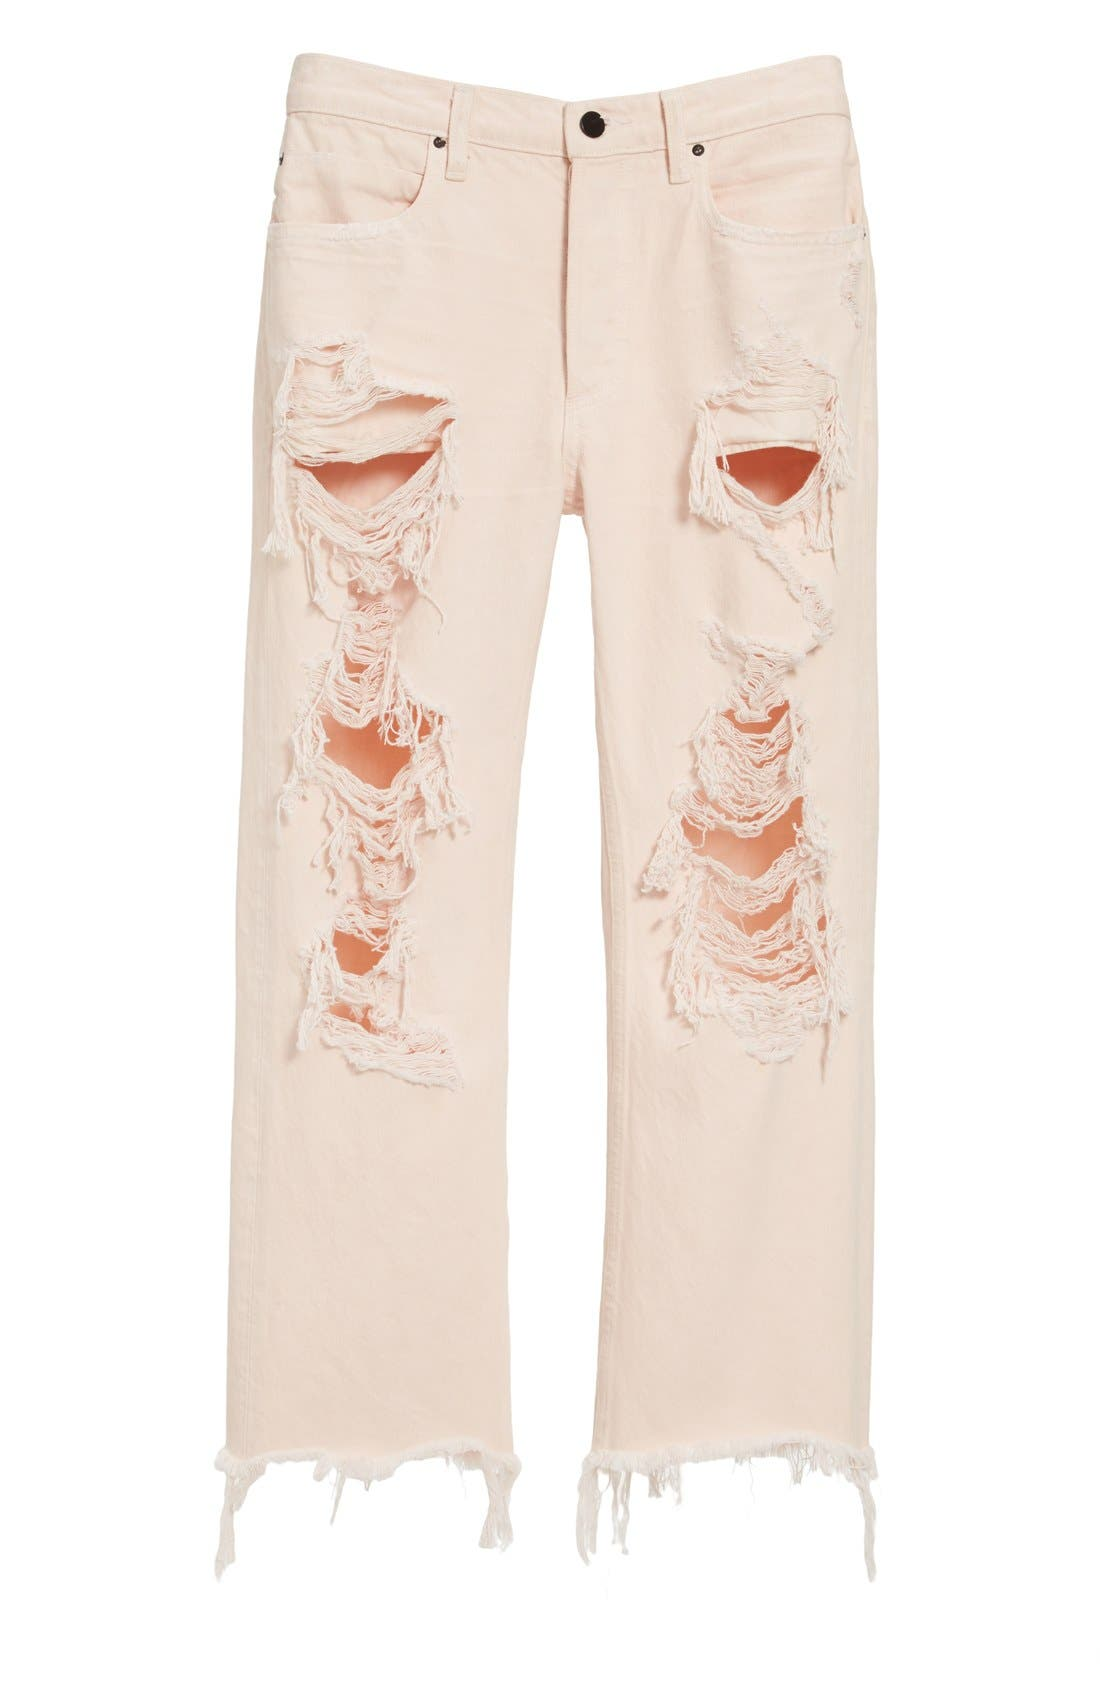 Alternate Image 1 Selected - Alexander Wang 'Rival' Destroyed Cutoff Jeans (Carnation)